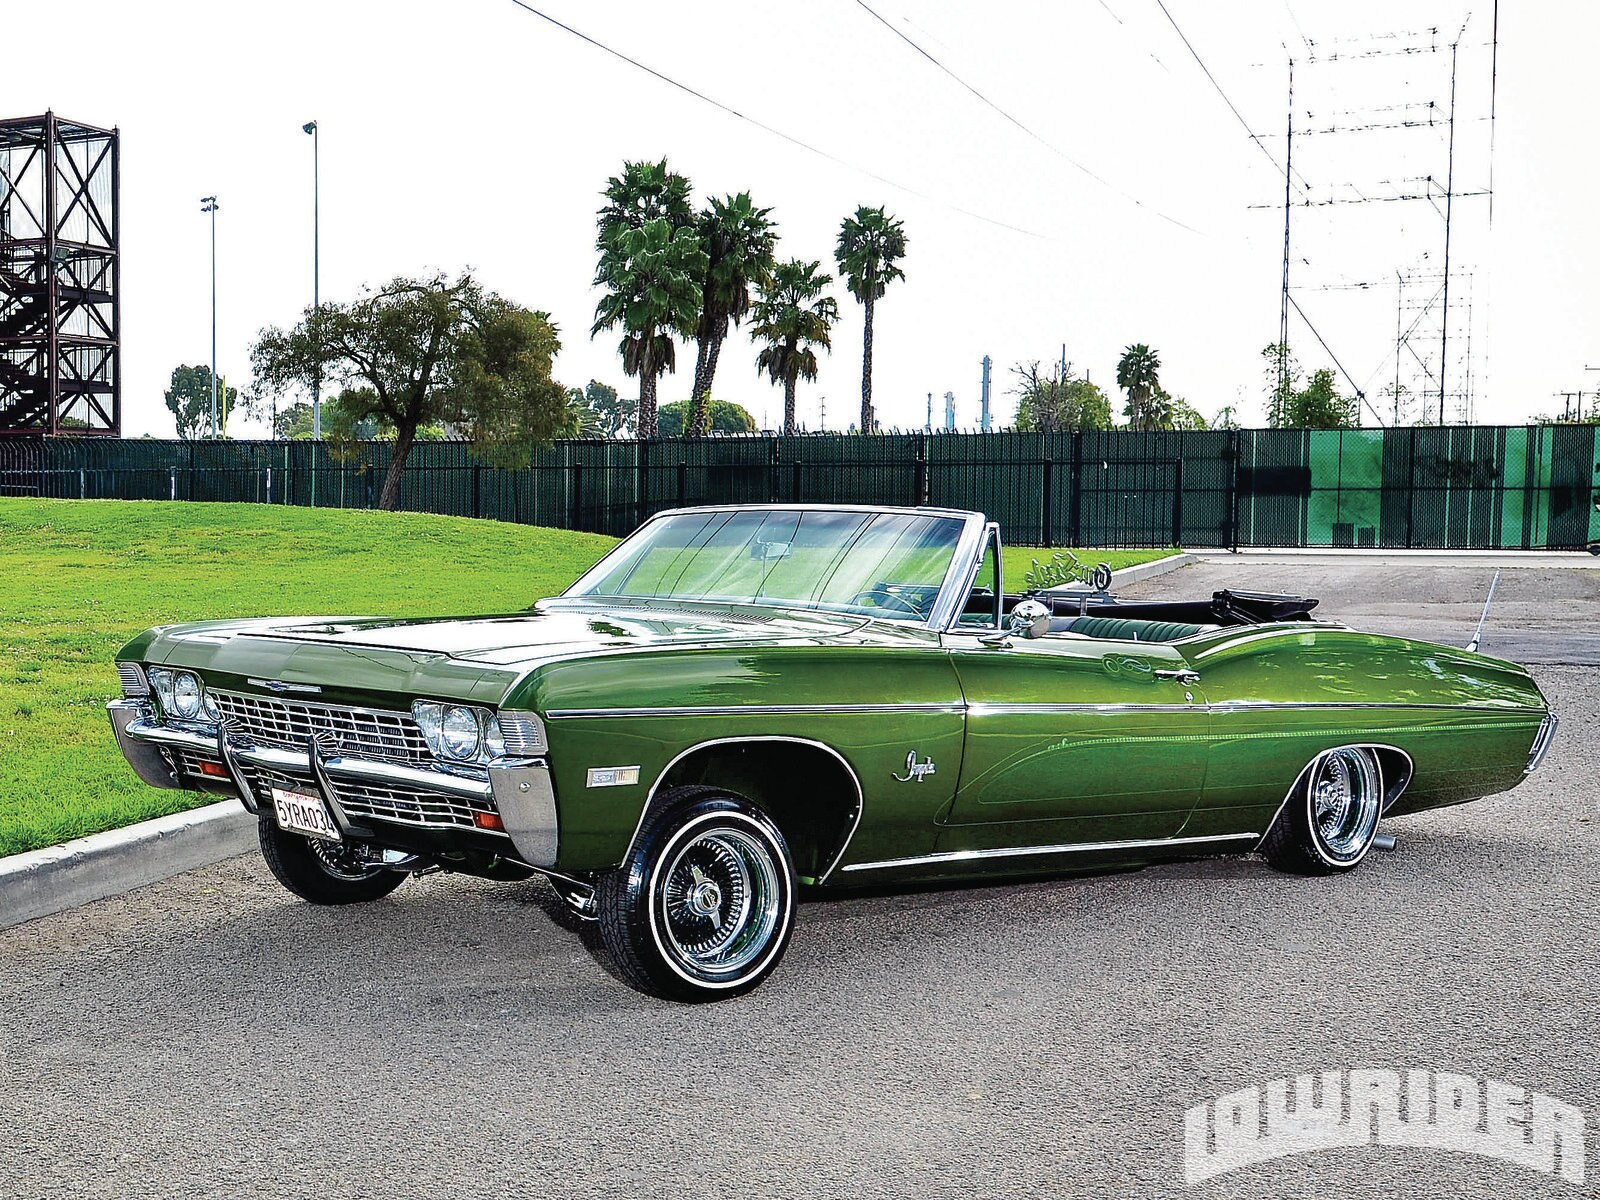 1109-lrmp-06-o-1968-chevrolet-impala-convertible-driver-side-front-view2